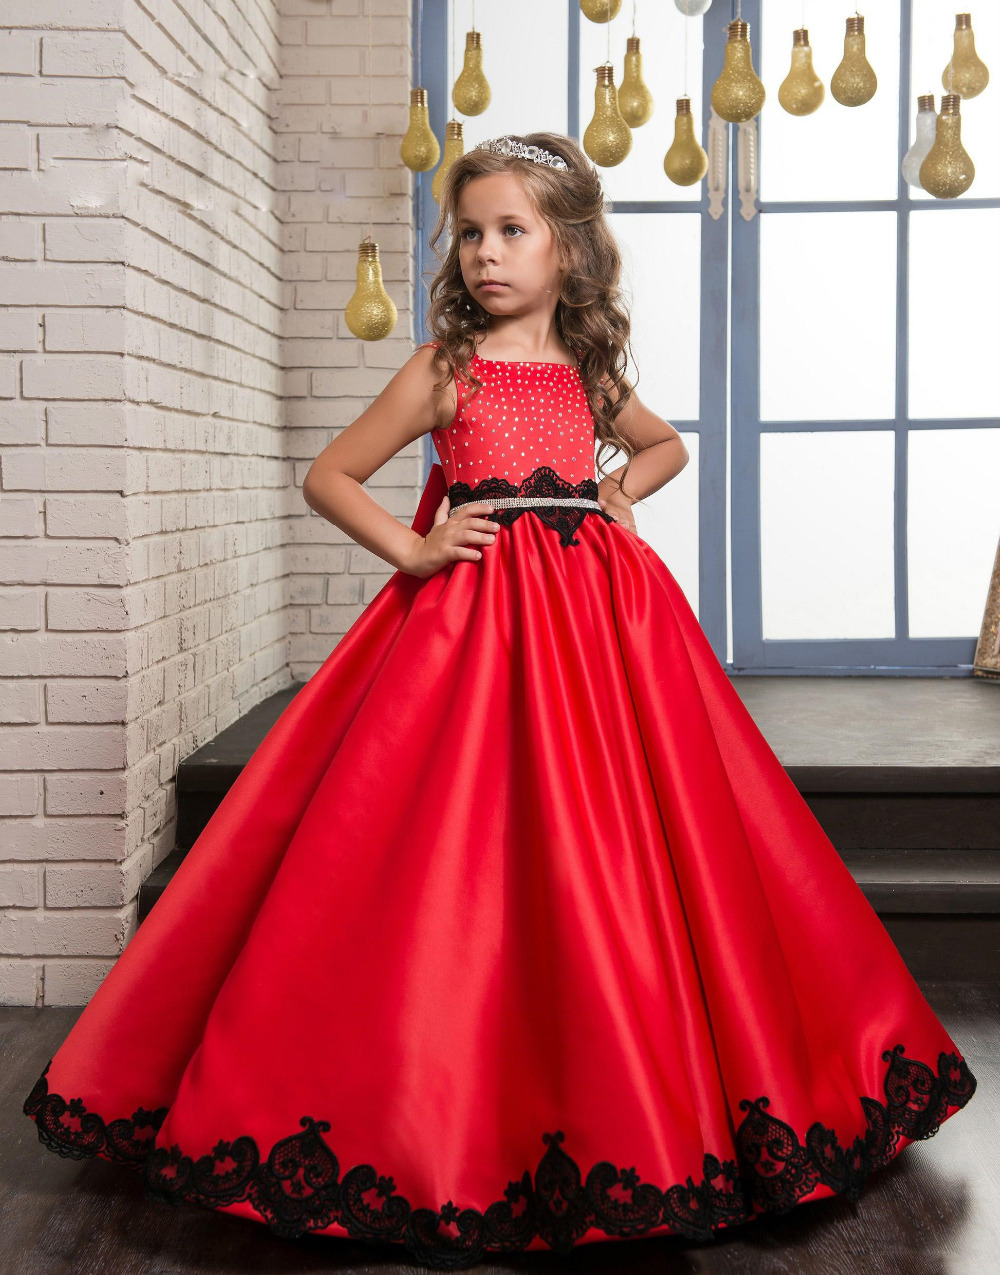 2017 Satin Beaded Appliques Flower Girls Dress Long First Communion Dresses With Sashes New Girls Pageant Dresses For Wedding